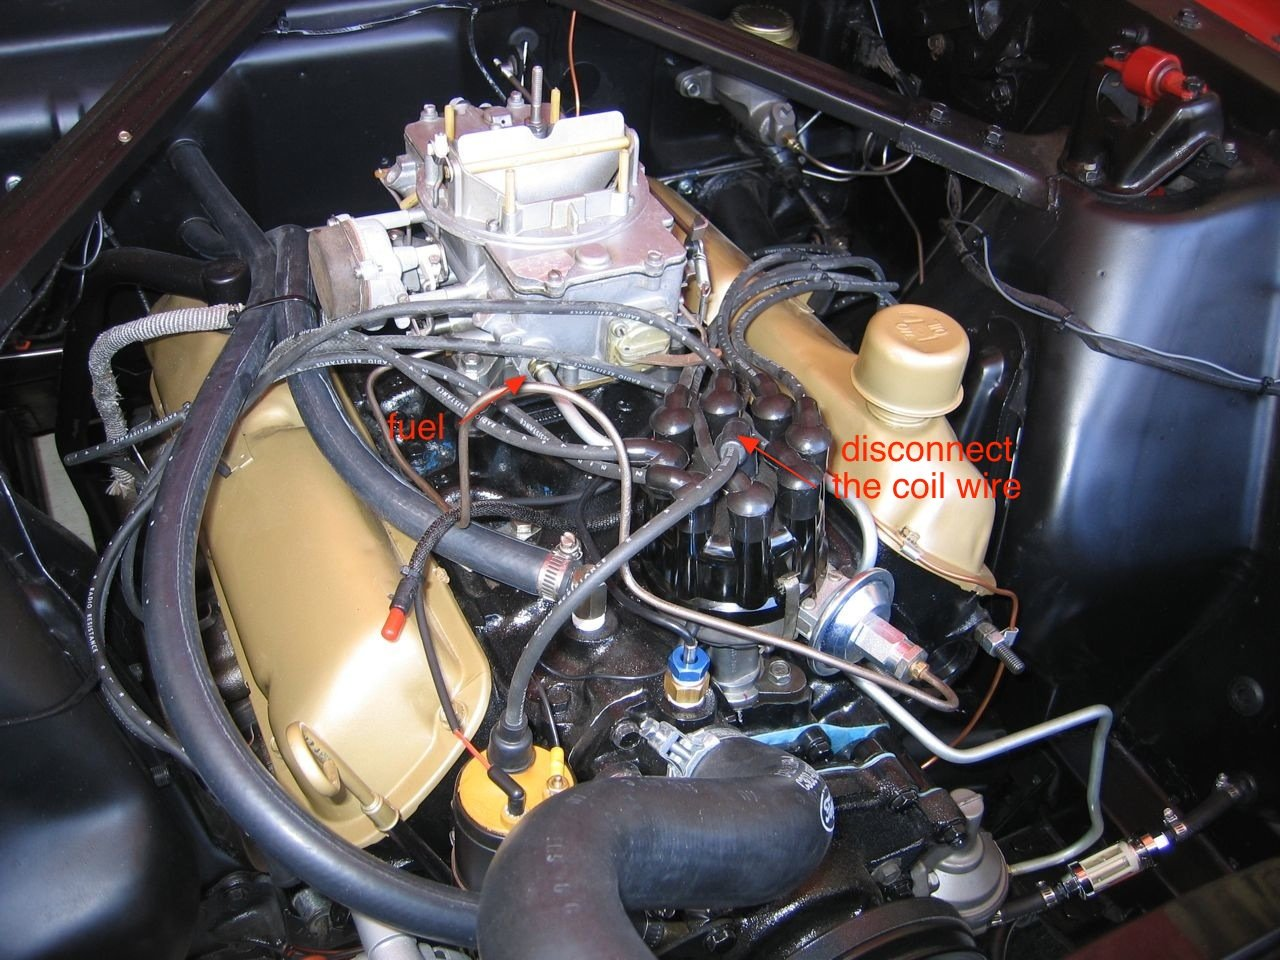 65 Mustang Fuel Pump Leaking Ford Forum 66 Filter Location Click Image For Larger Version Name Img 1091 Views 4364 Size 3166